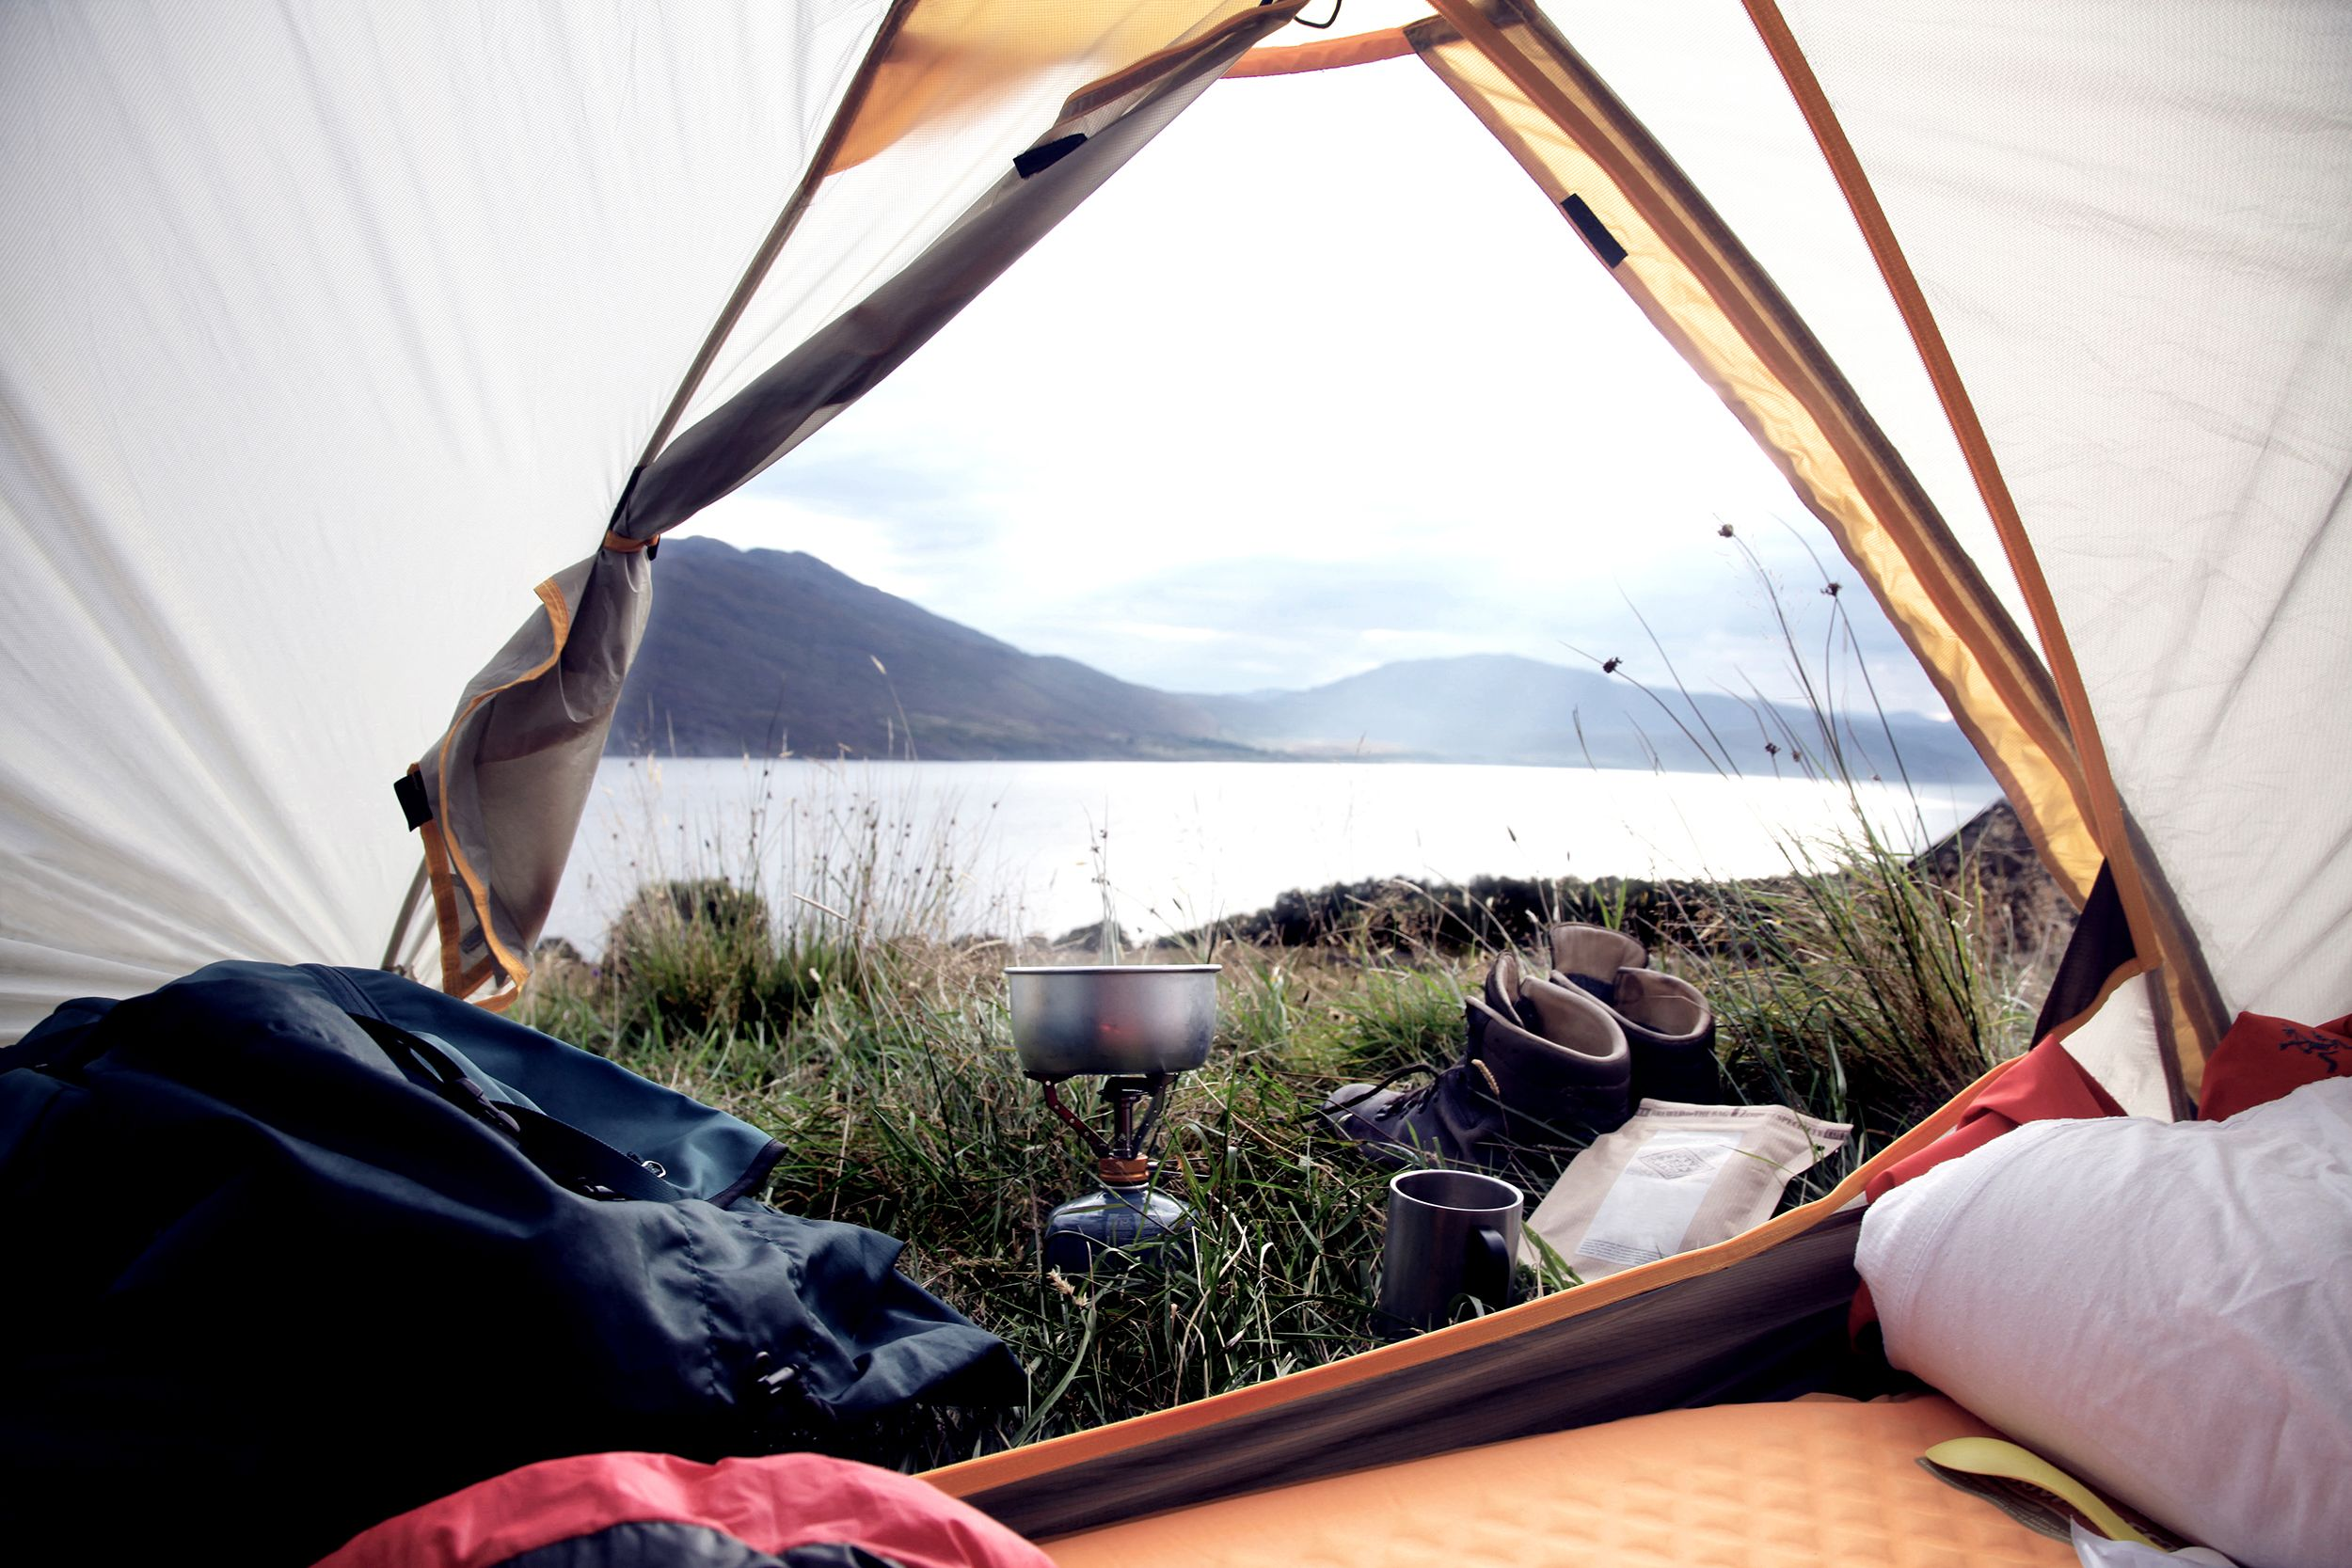 Best campsites in the UK: Family, beach, couples & more for 2020